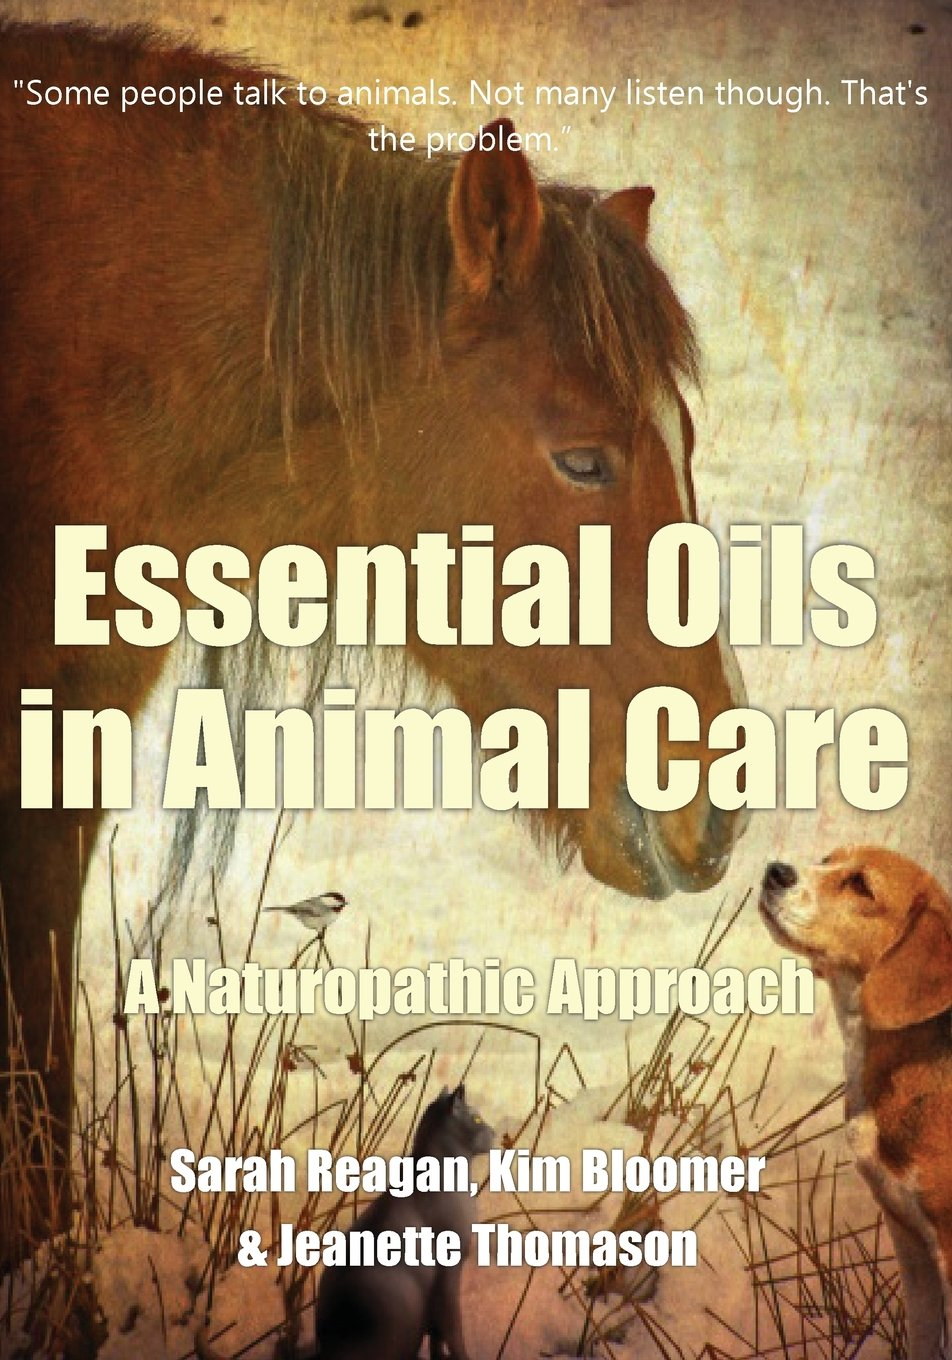 Essential Oils Animal Care Naturopathic product image